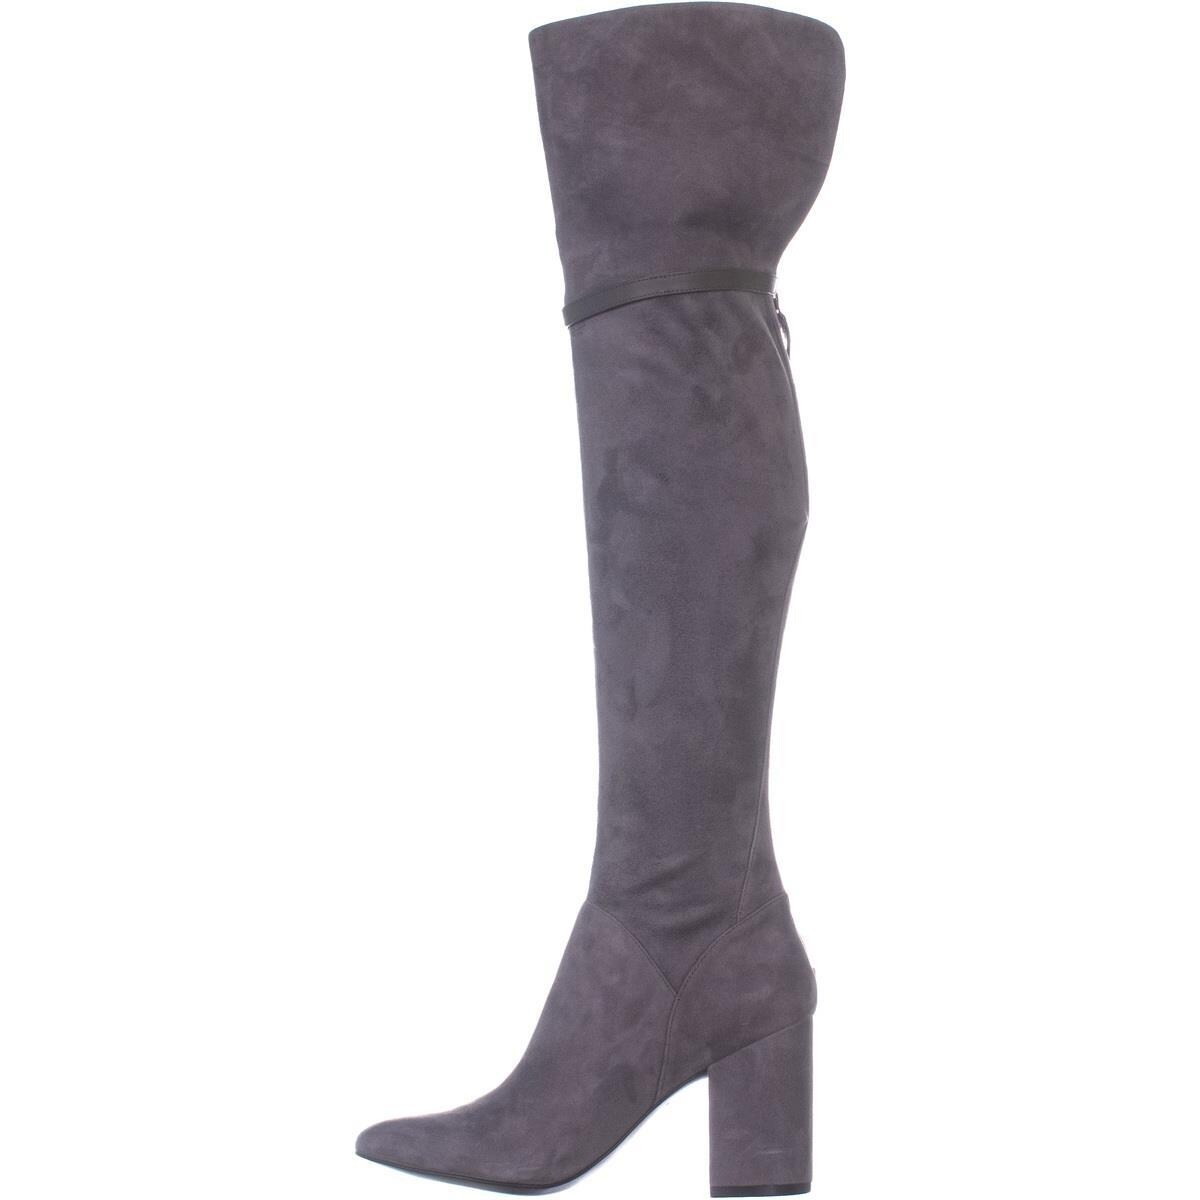 6e1cf47ffda Shop Cole Haan Darcia Over The Knee Fashion Boots